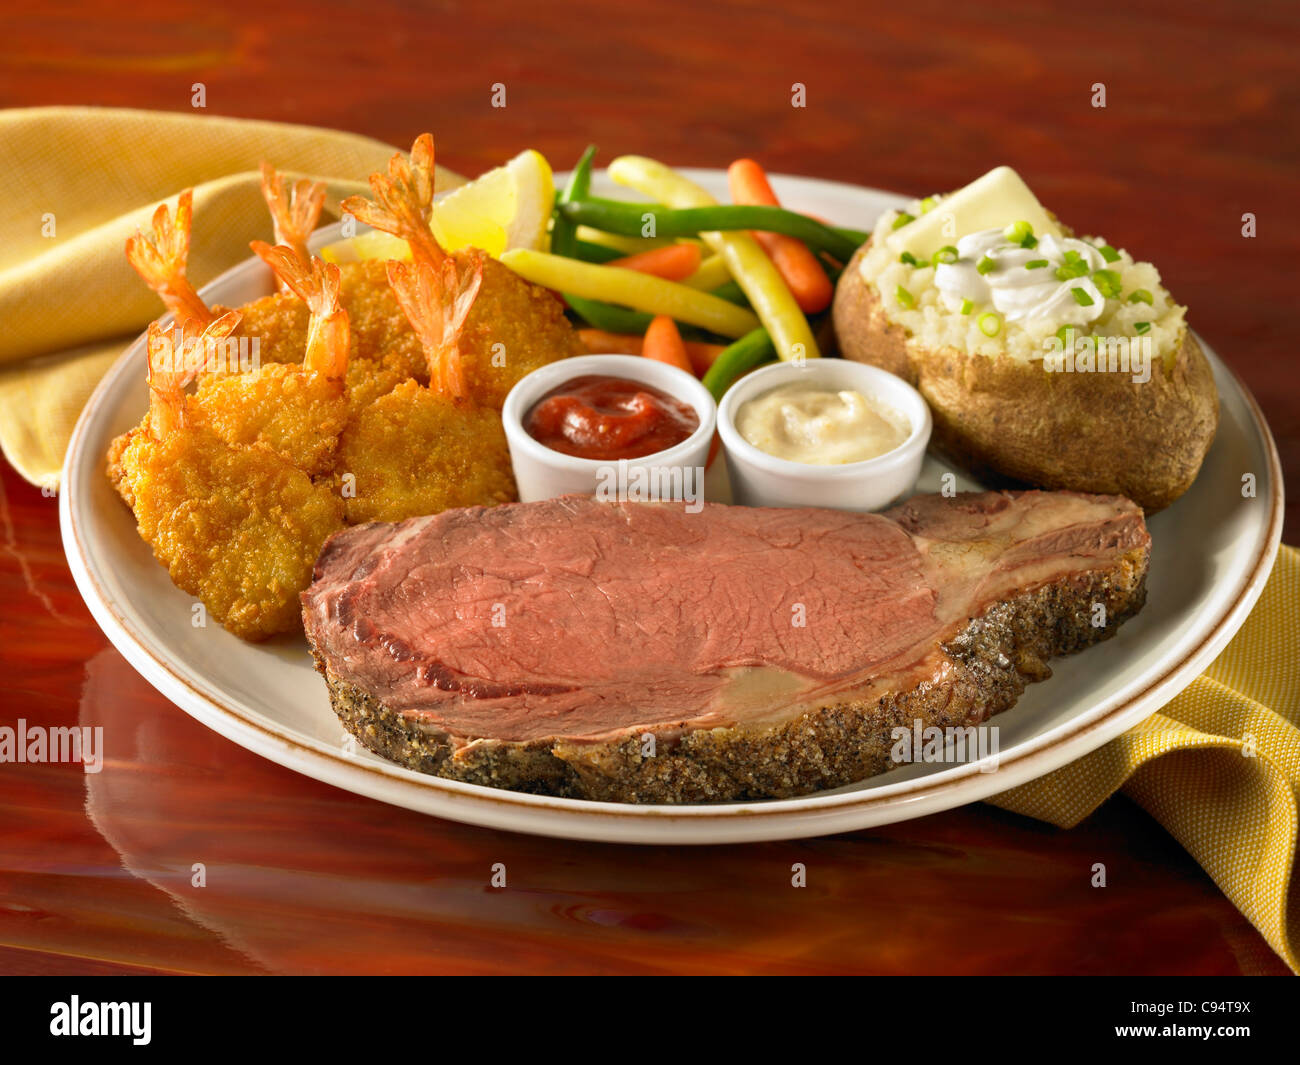 Prime Rib And Shrimp Dinner With Loaded Stuffed Potato And Vegetable Stock Photo